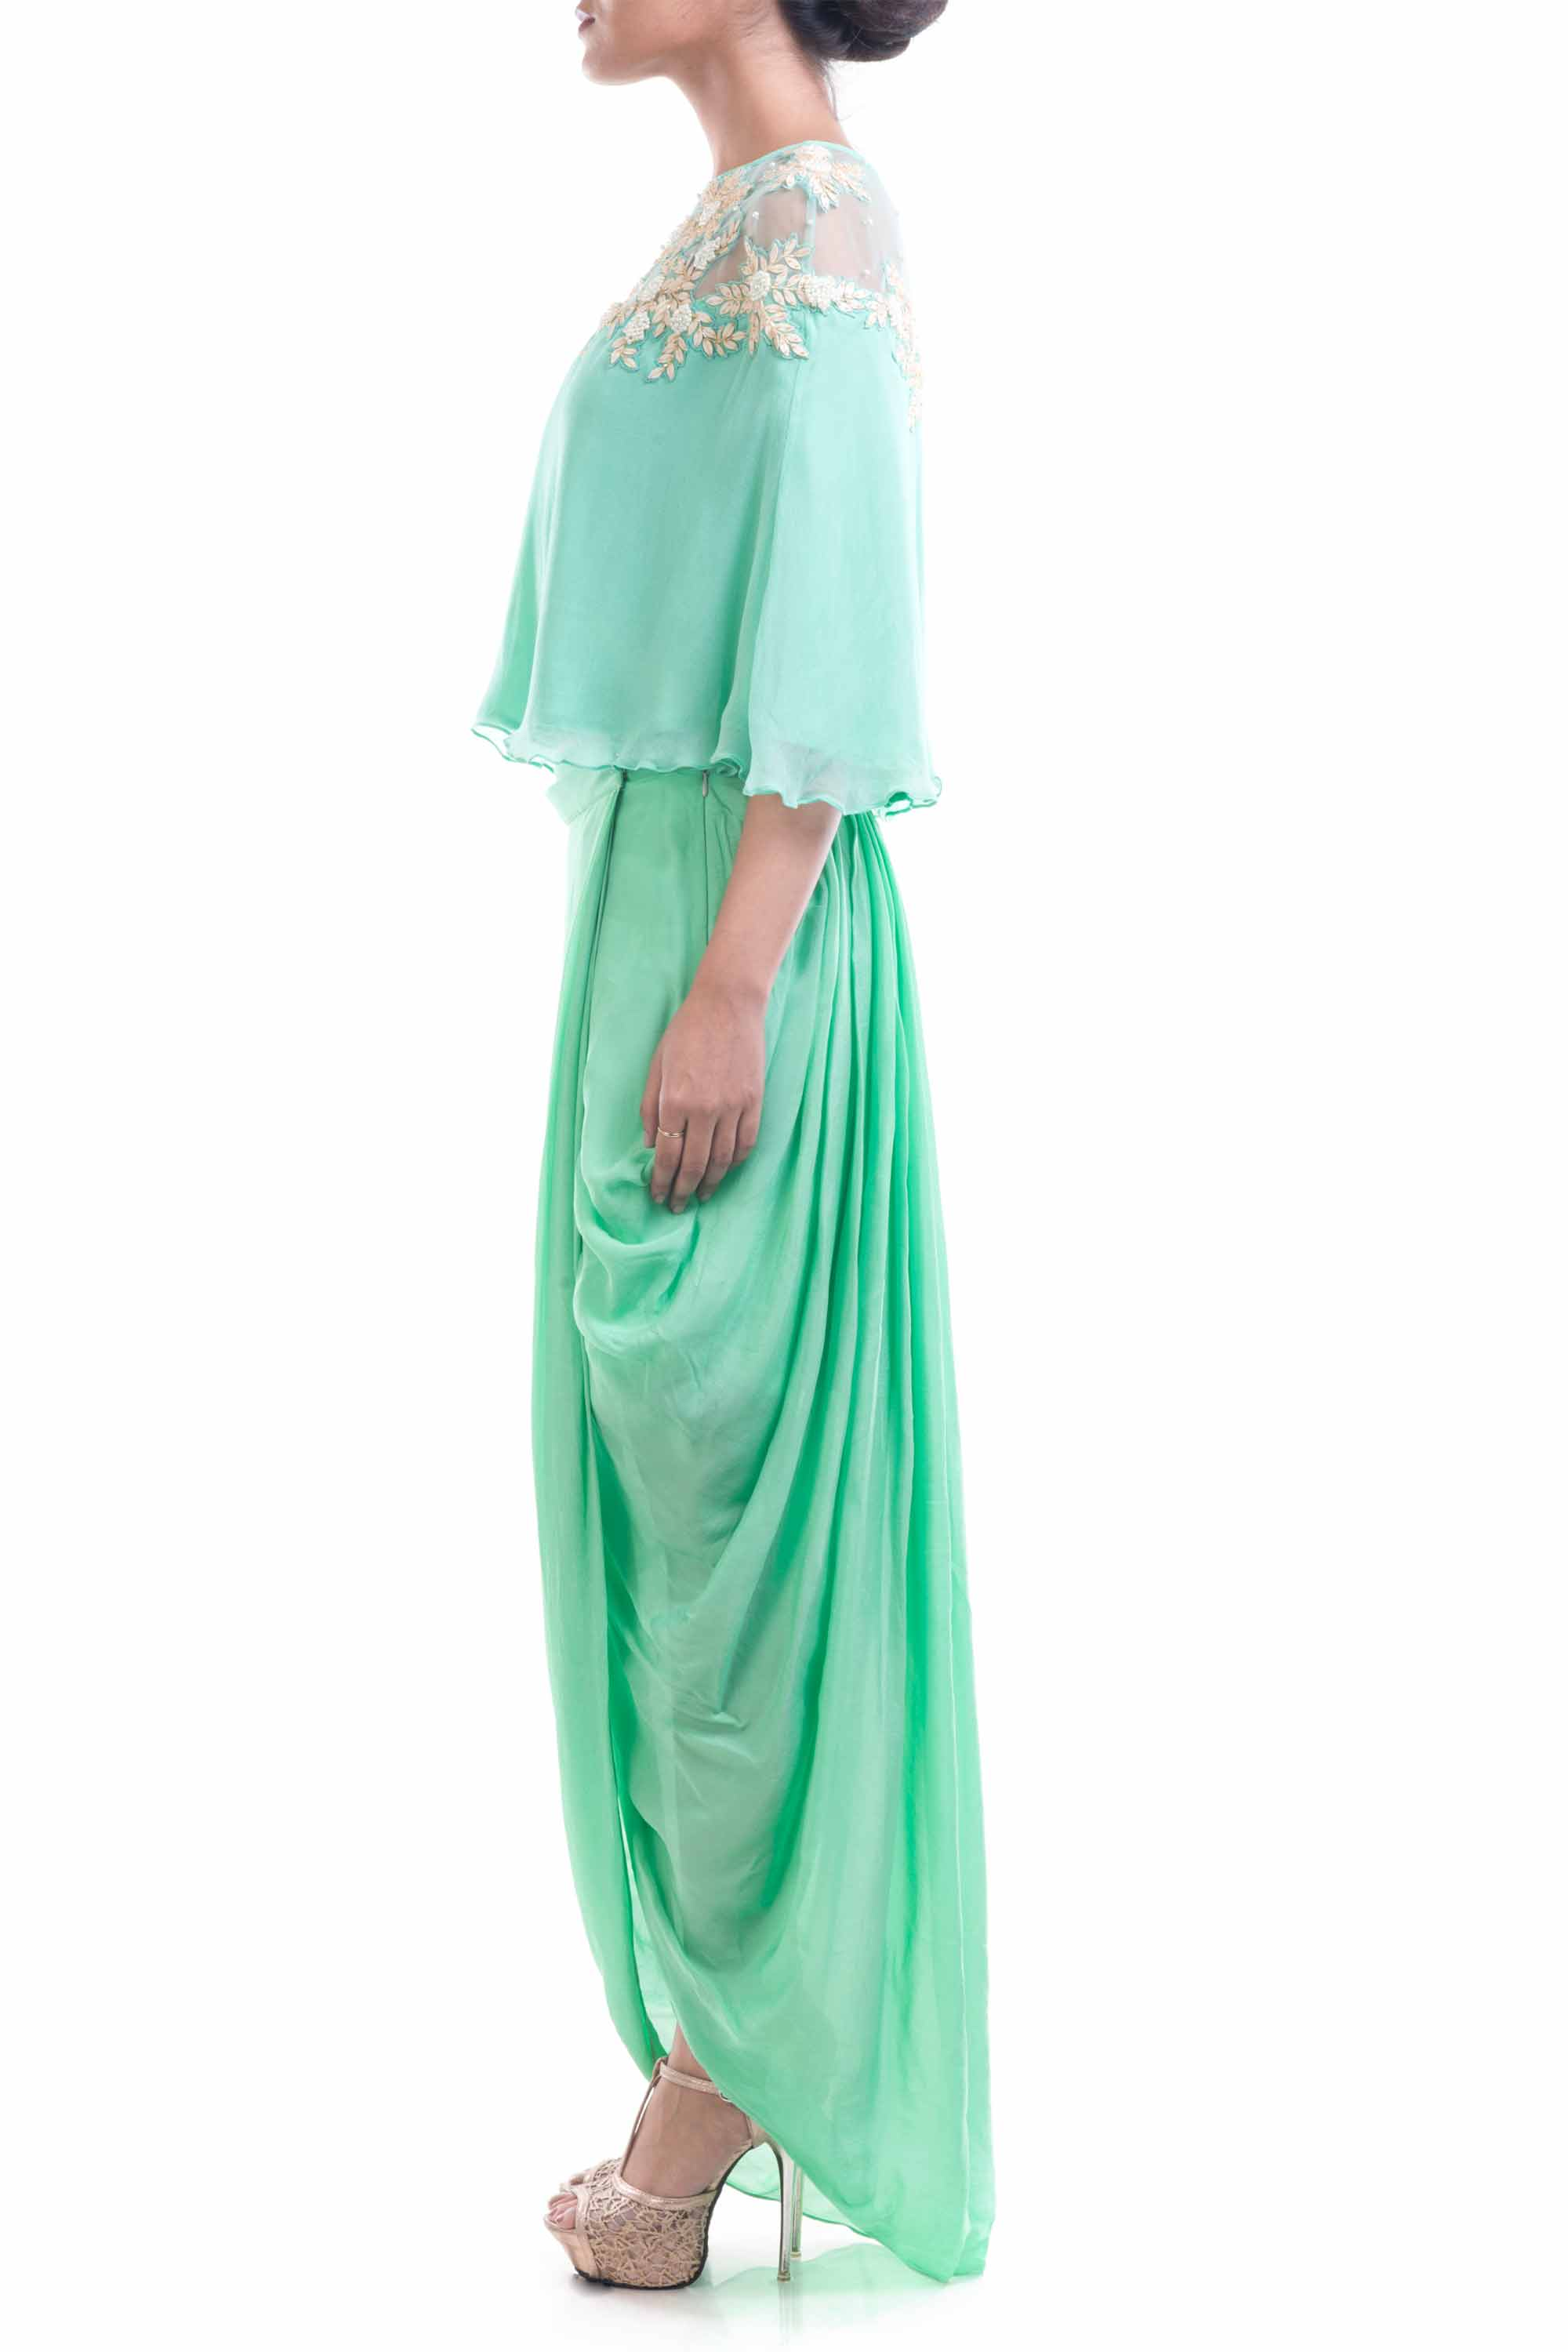 Aqua Blue Chiffon Cape With Wrap Dhoti Skirt Side